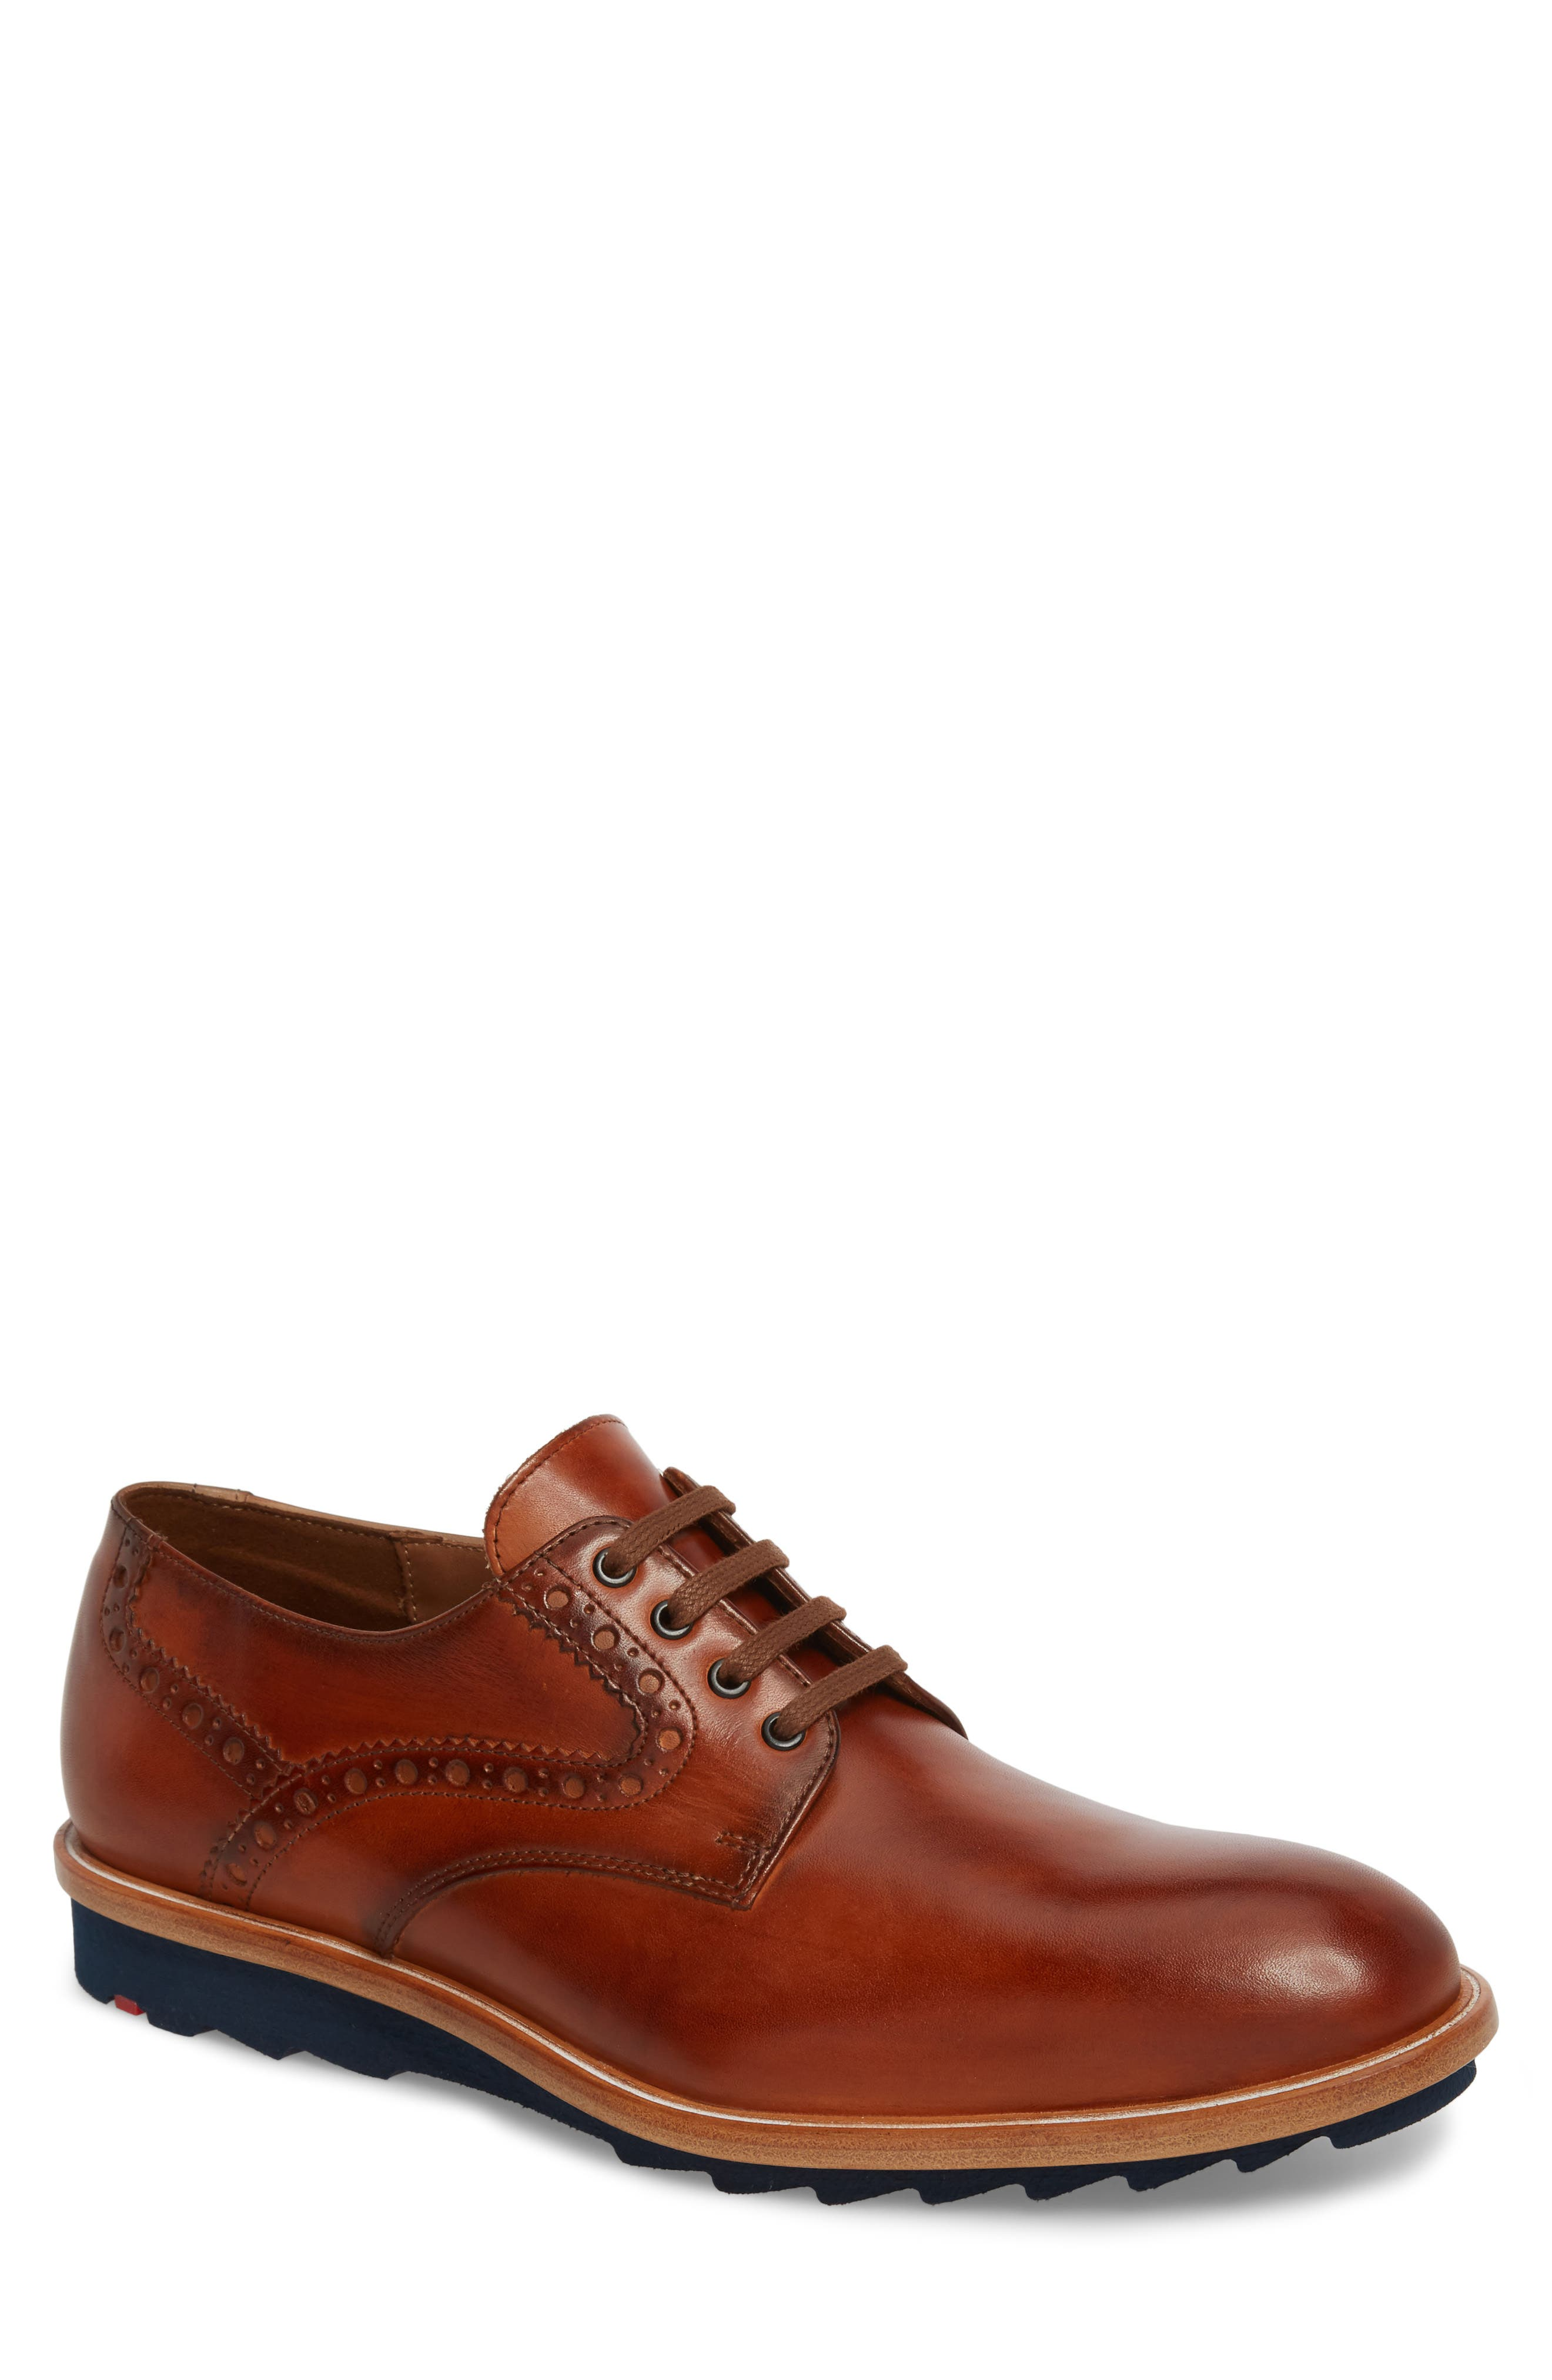 Fabian Plain Toe Derby,                             Main thumbnail 1, color,                             Fox Brown Leather